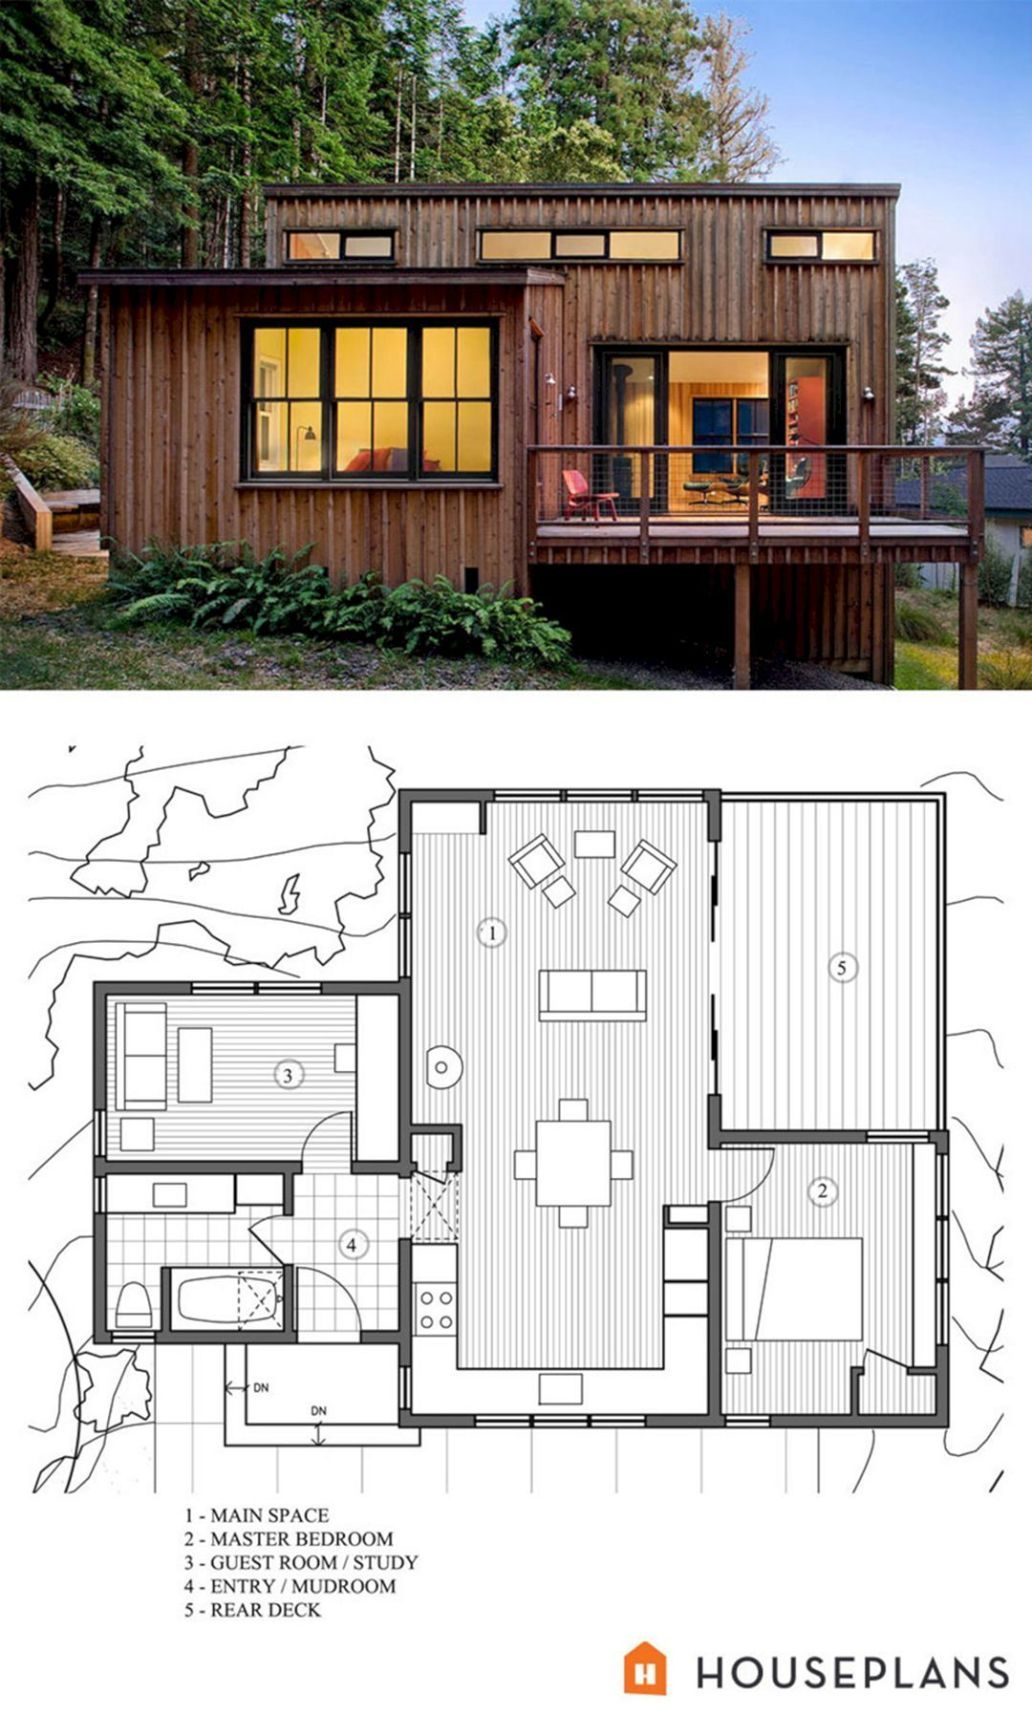 The Best Modern Tiny House Design Small Homes Inspirations No 103 Modern Style House Plans Modern Tiny House Small House